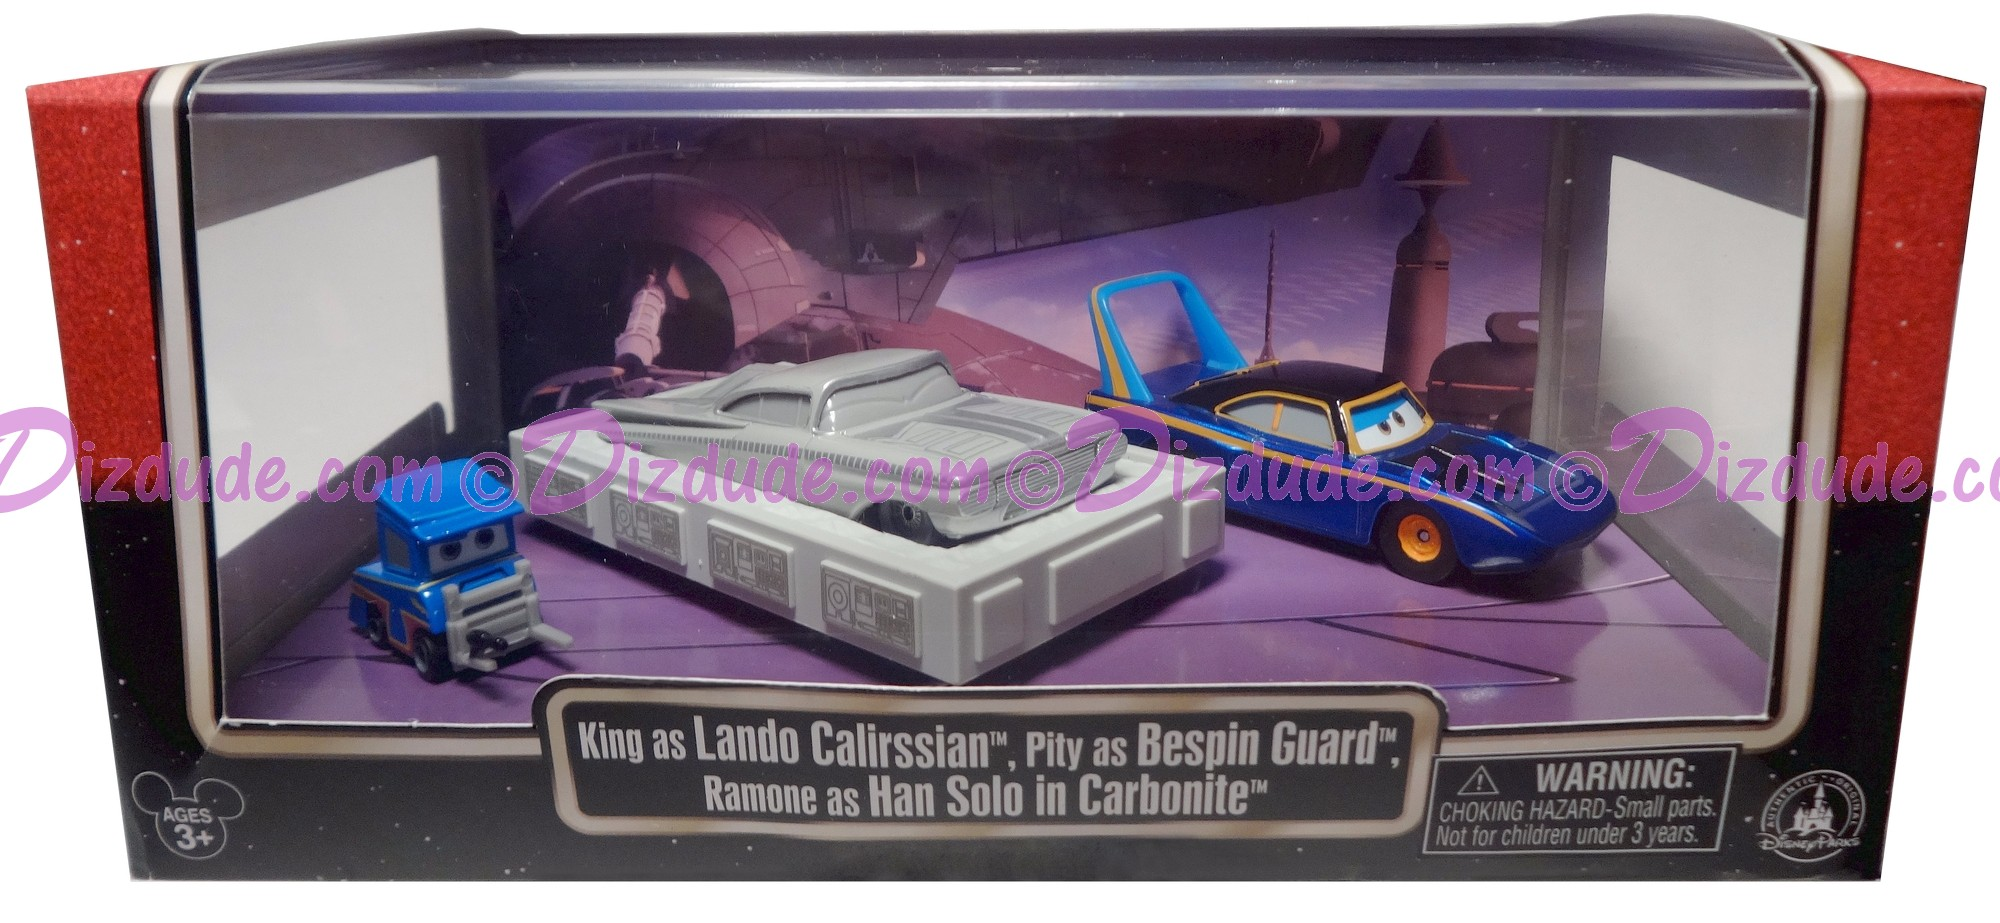 "Disney Pixar ""Cars"" as LucasFilm ""Star Wars"" King as Lando Calrissian, Ramone as Han Solo in Carbonite and Pittie as Guard (Deluxe Box Set of 3) - Series 3 ~ Exclusive Star Wars Weekends 2015"